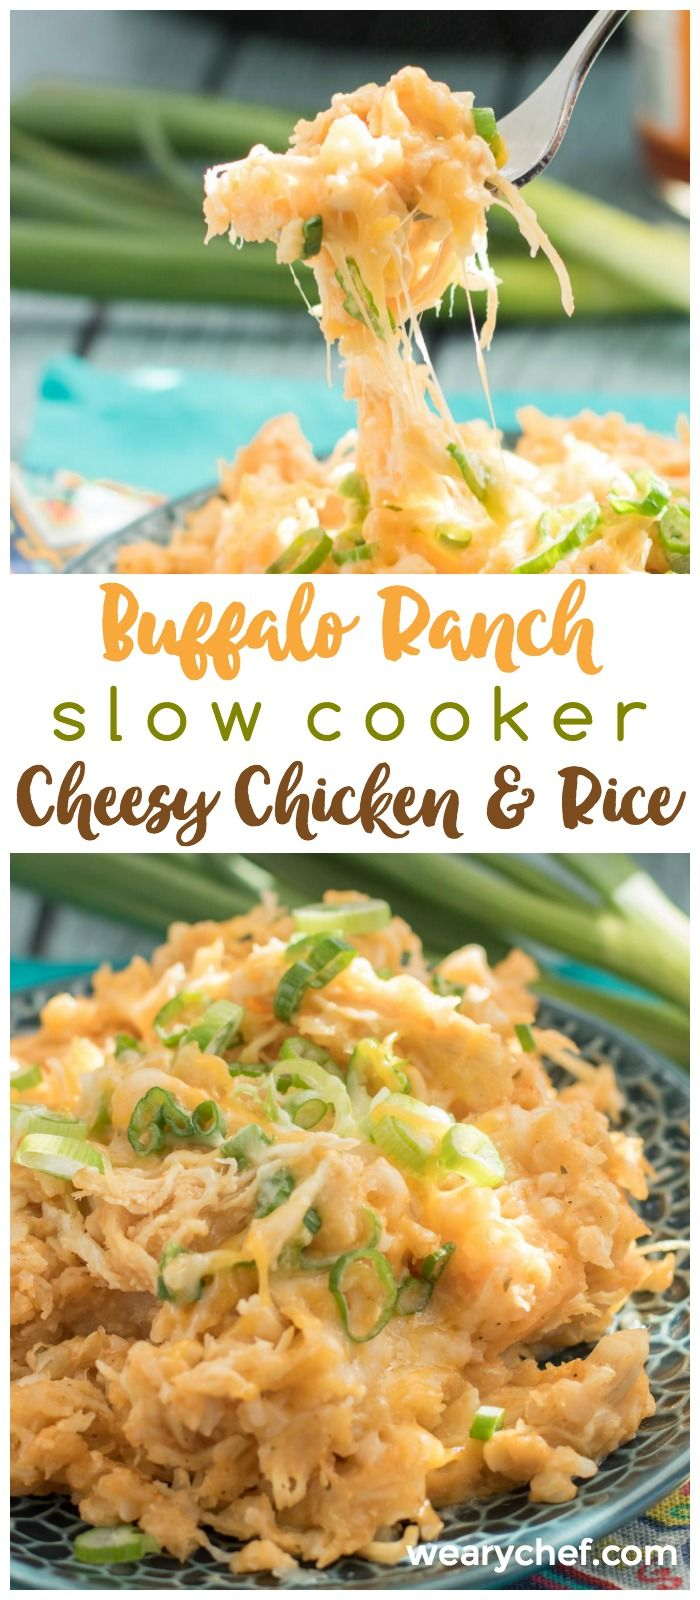 This Buffalo Ranch Crockpot Chicken and Rice might be your new favorite slow cooker dinner recipe!